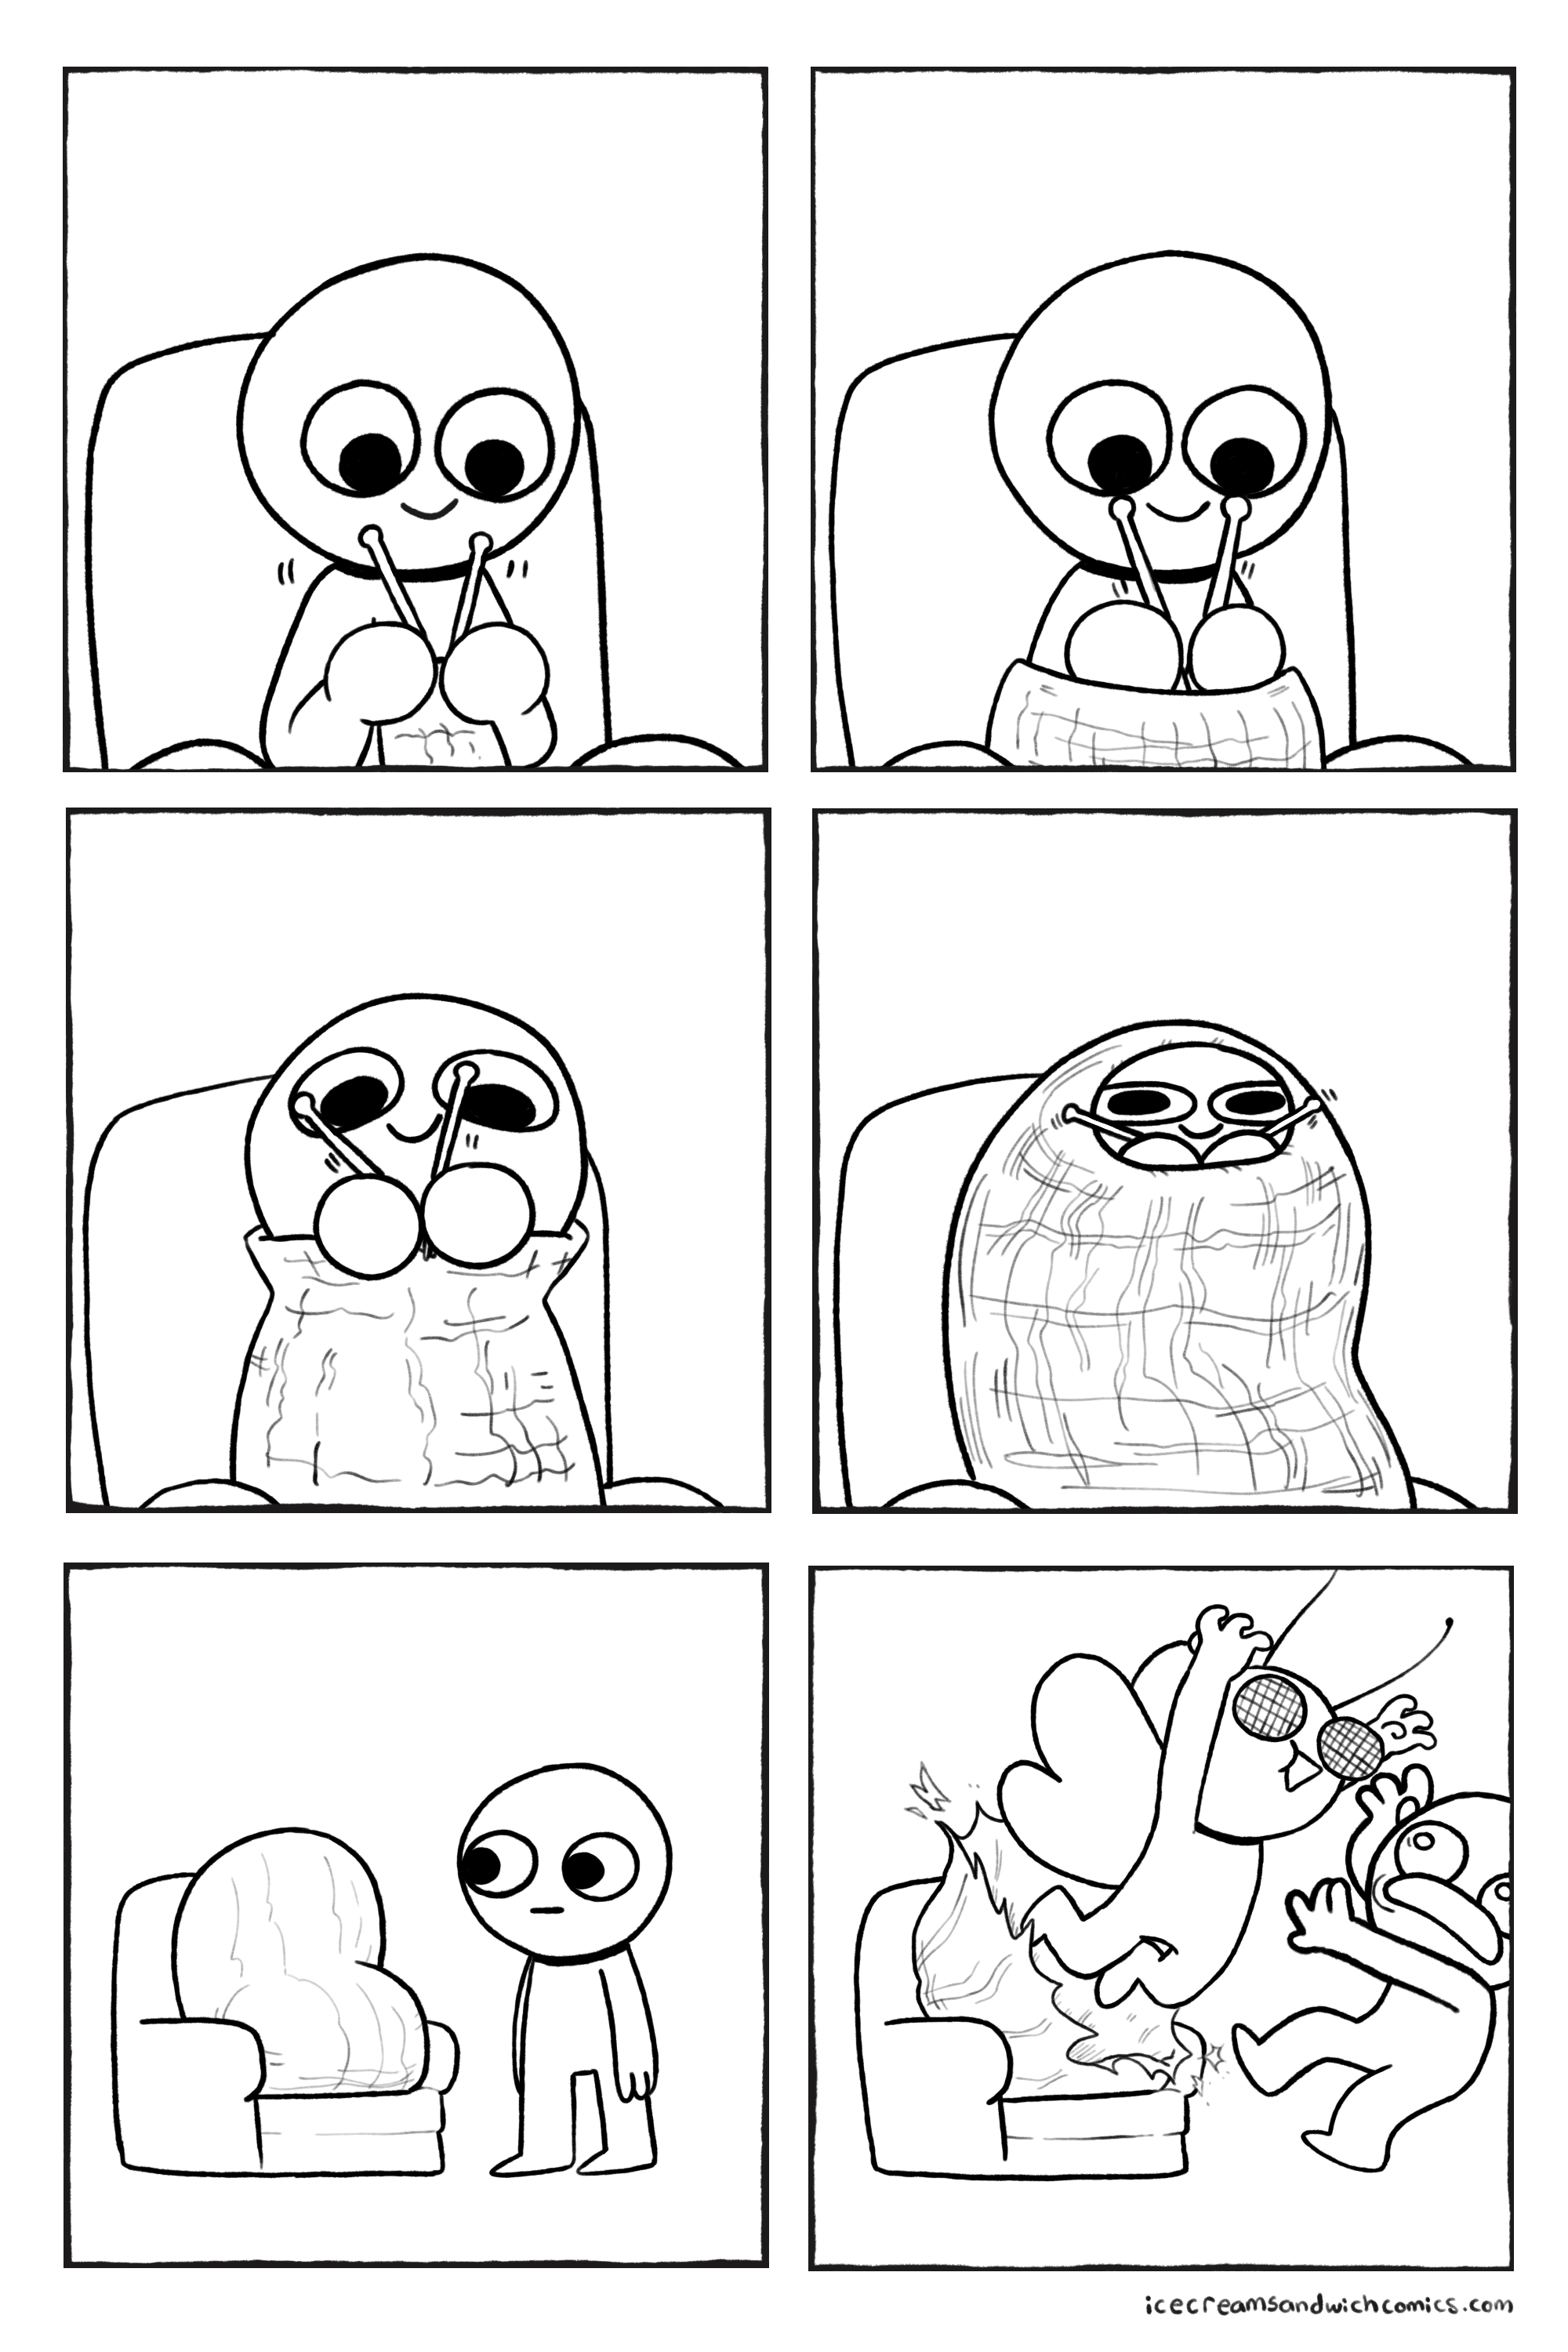 New Funny Comics Been getting into knitting lately Been getting into knitting lately - Album on Imgur 6